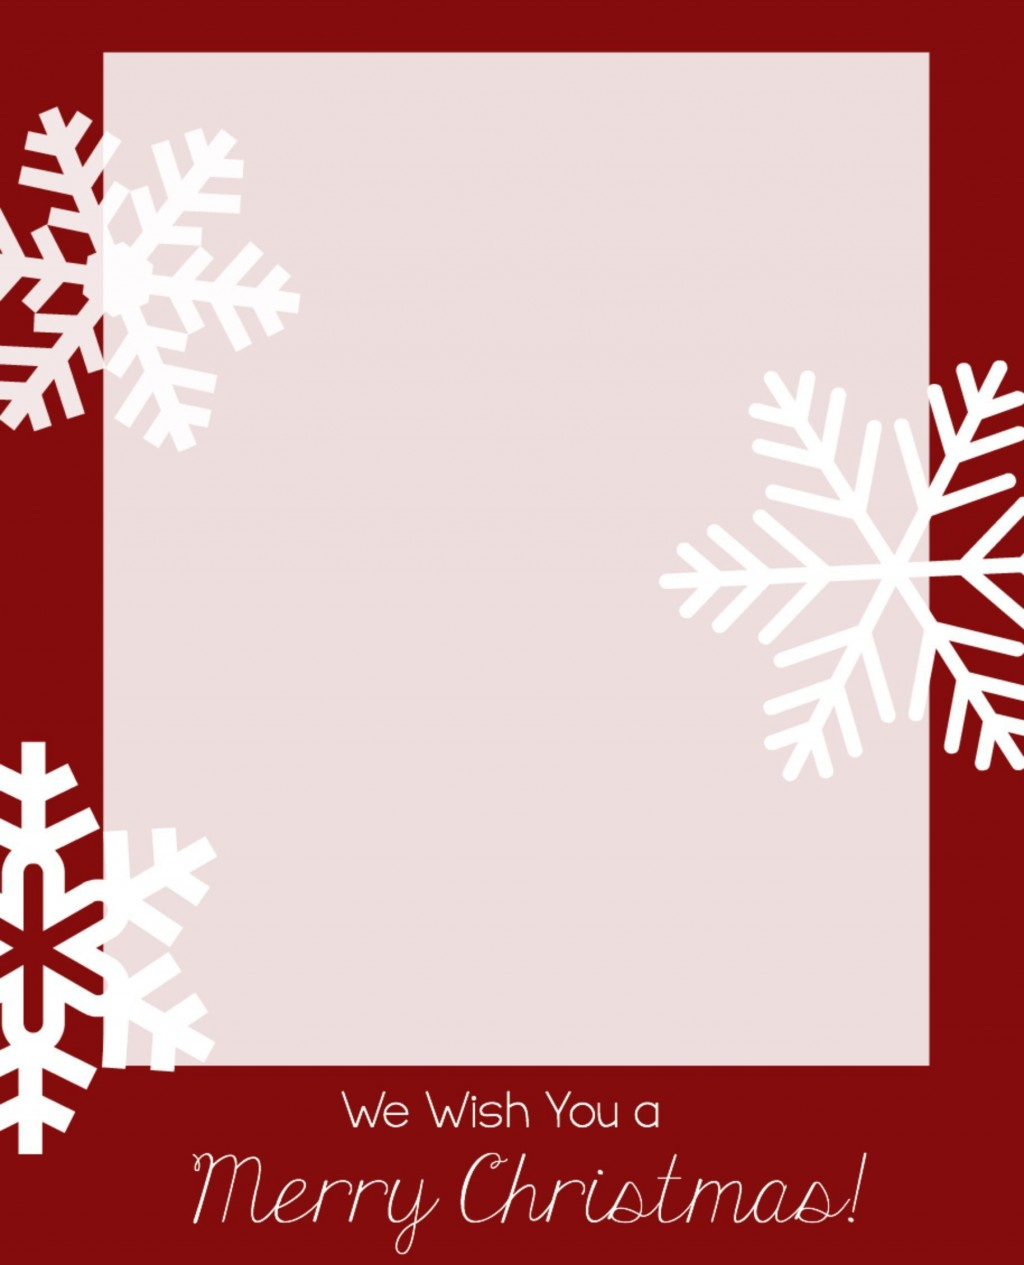 004 Unique Free Download Holiday Card Template Photo Large